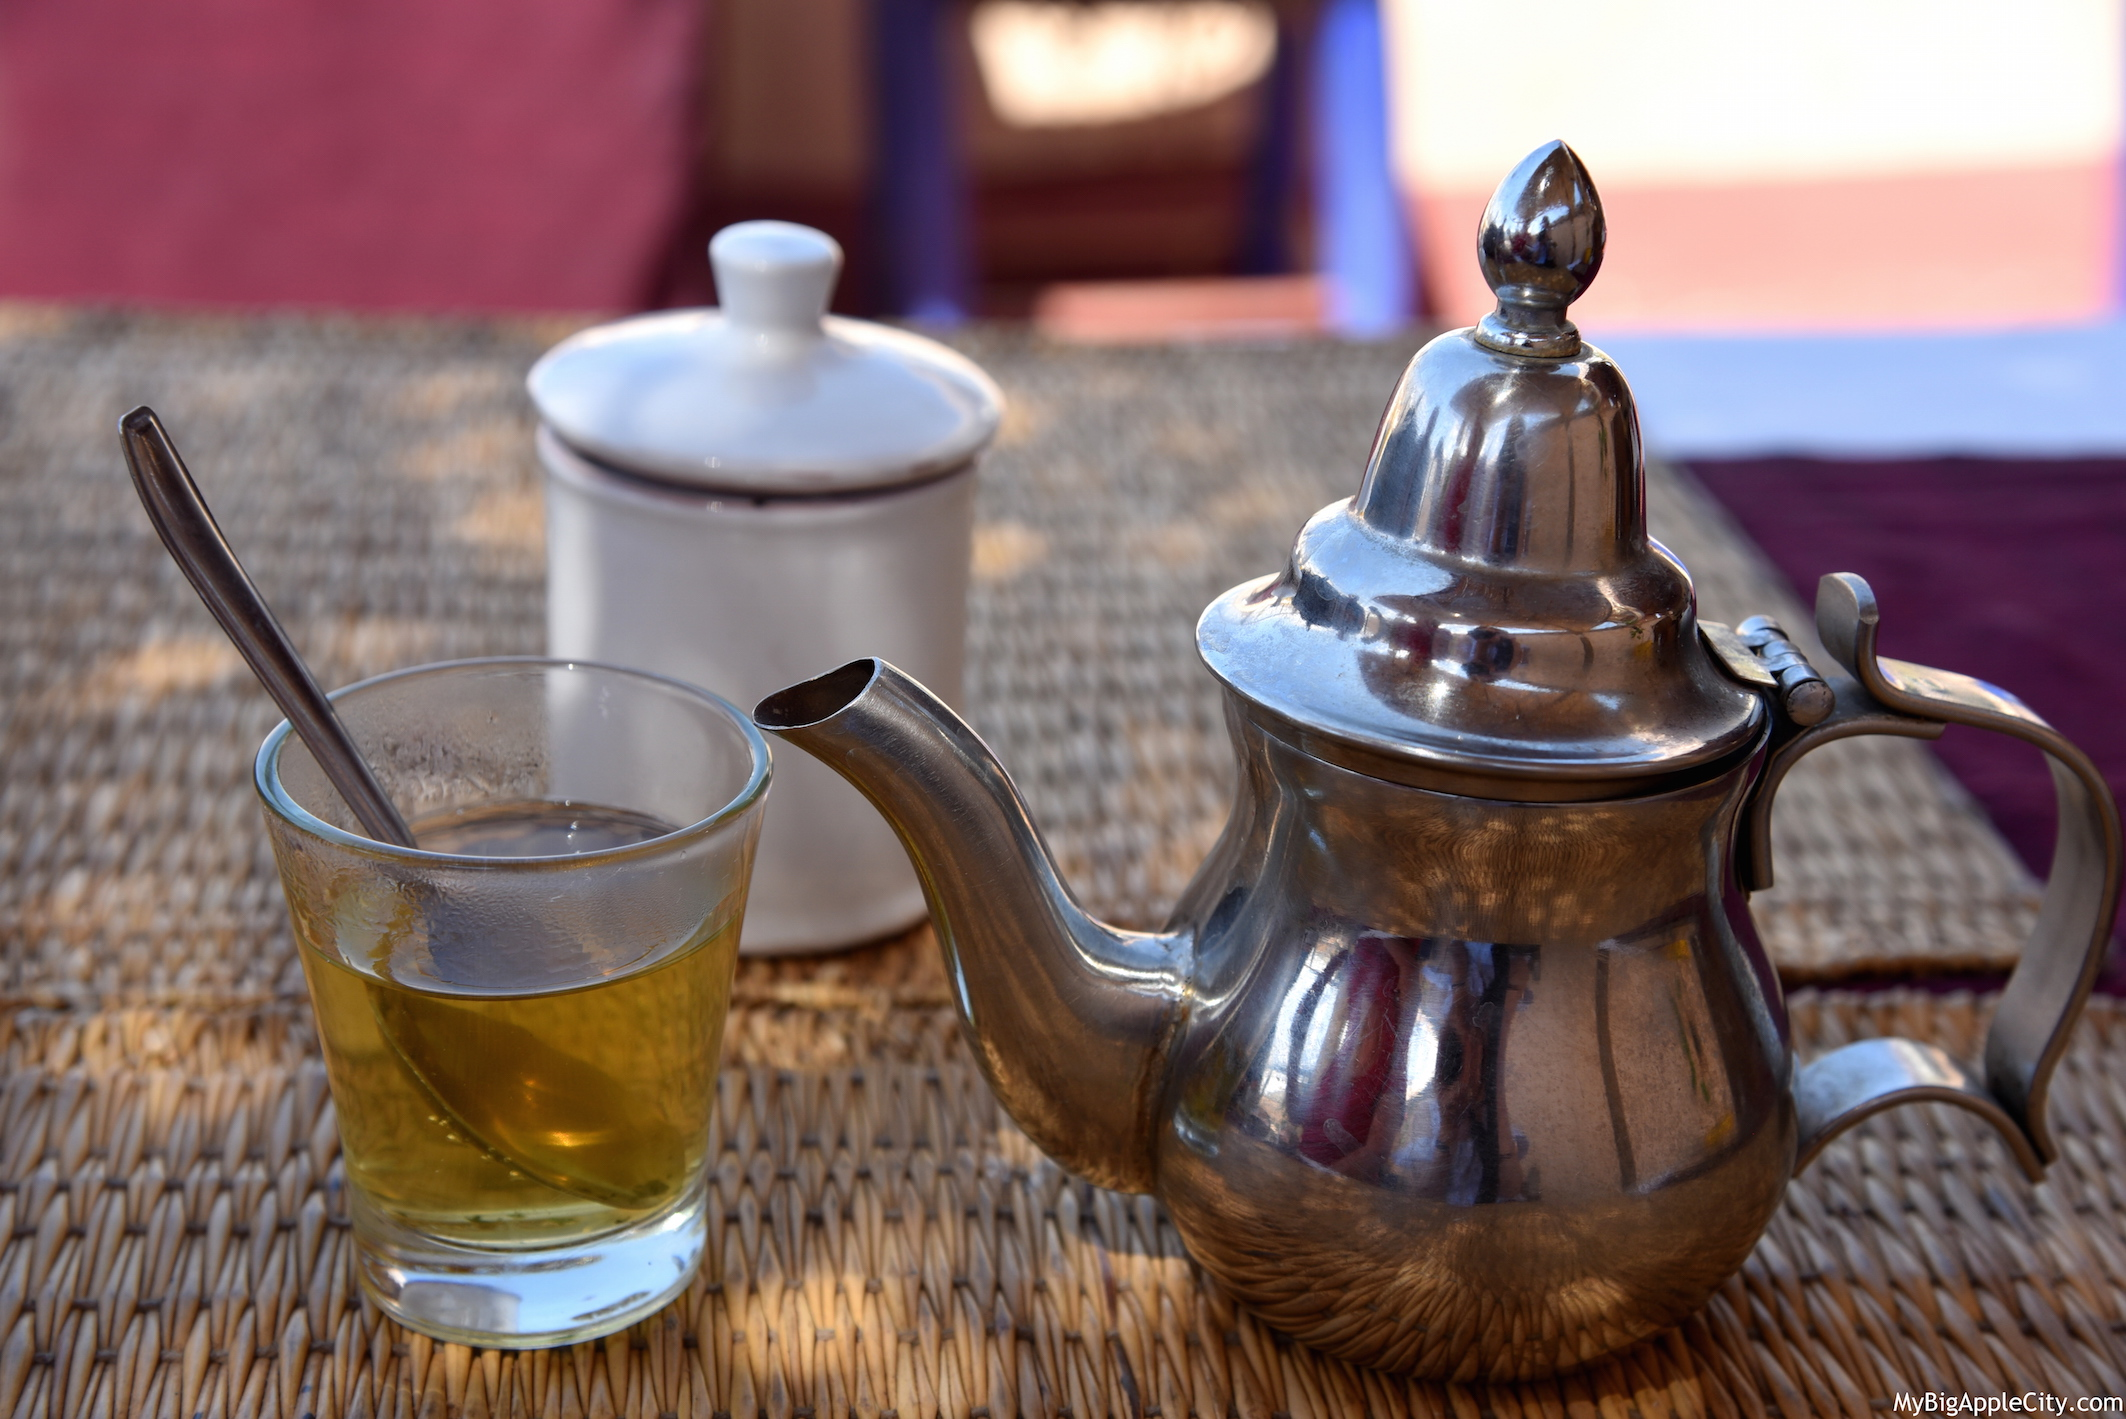 Tea-Marrakech-Travel-Blogger-2016-MyBigAppleCity